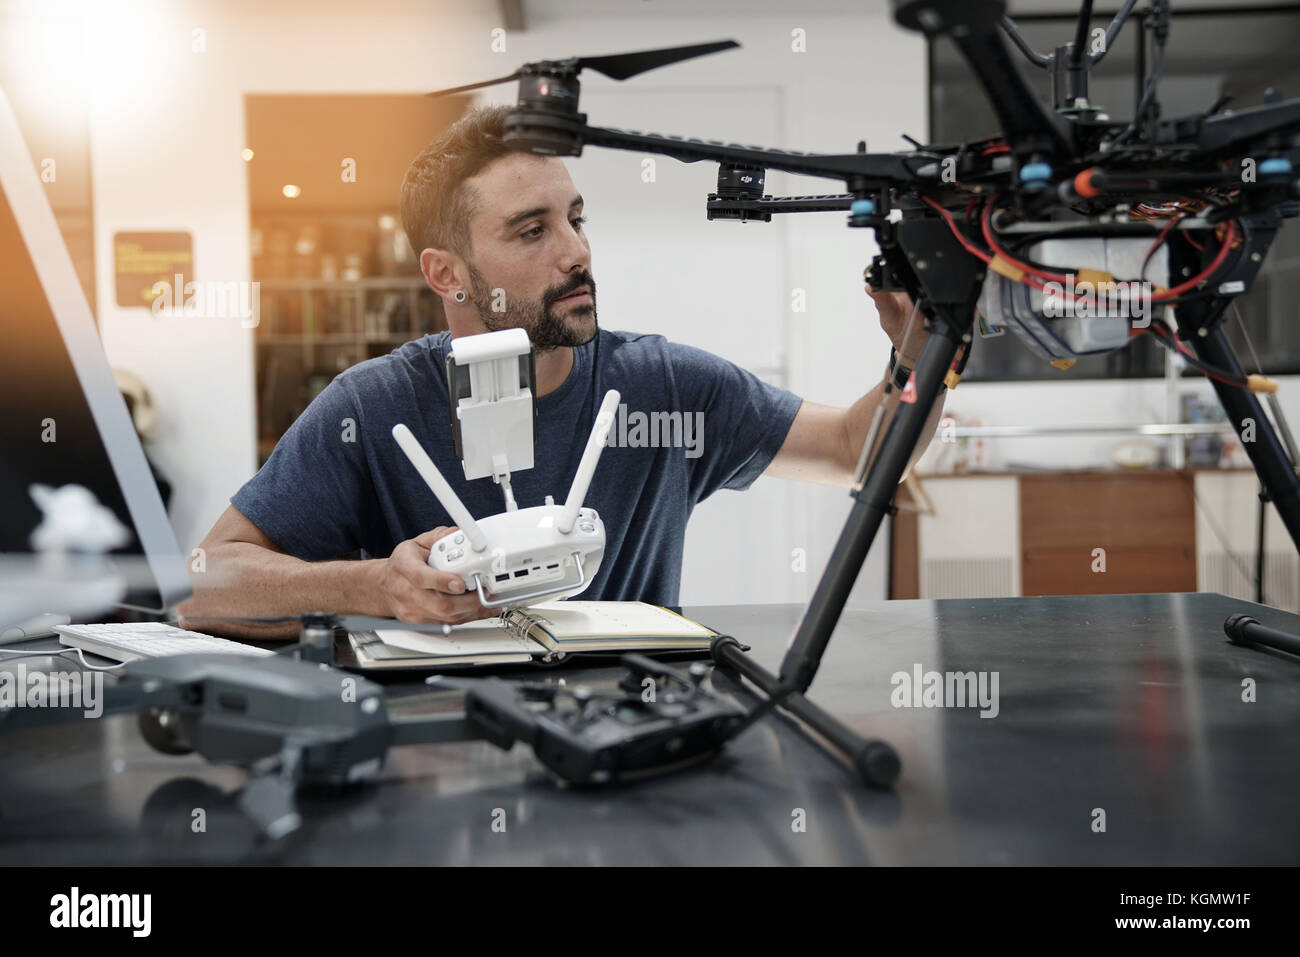 Engineer working on drone in office - Stock Image